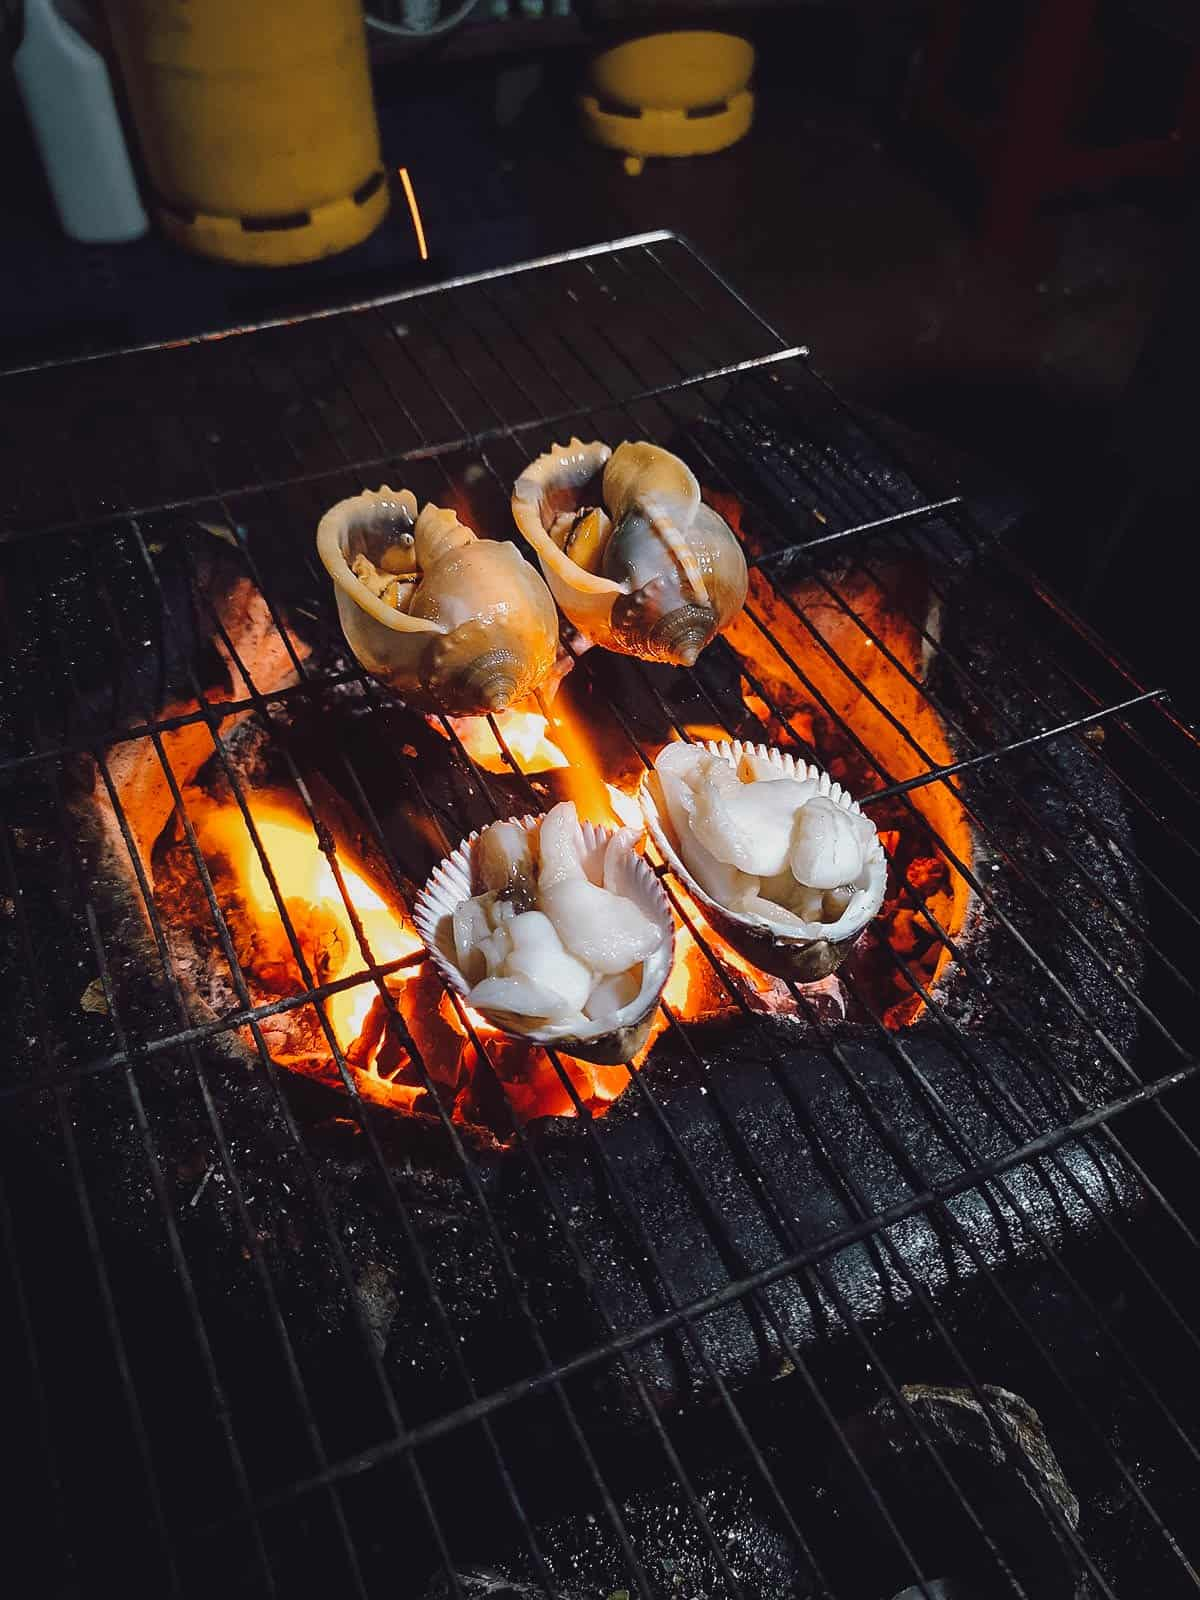 Grilling snails at Oc Loan